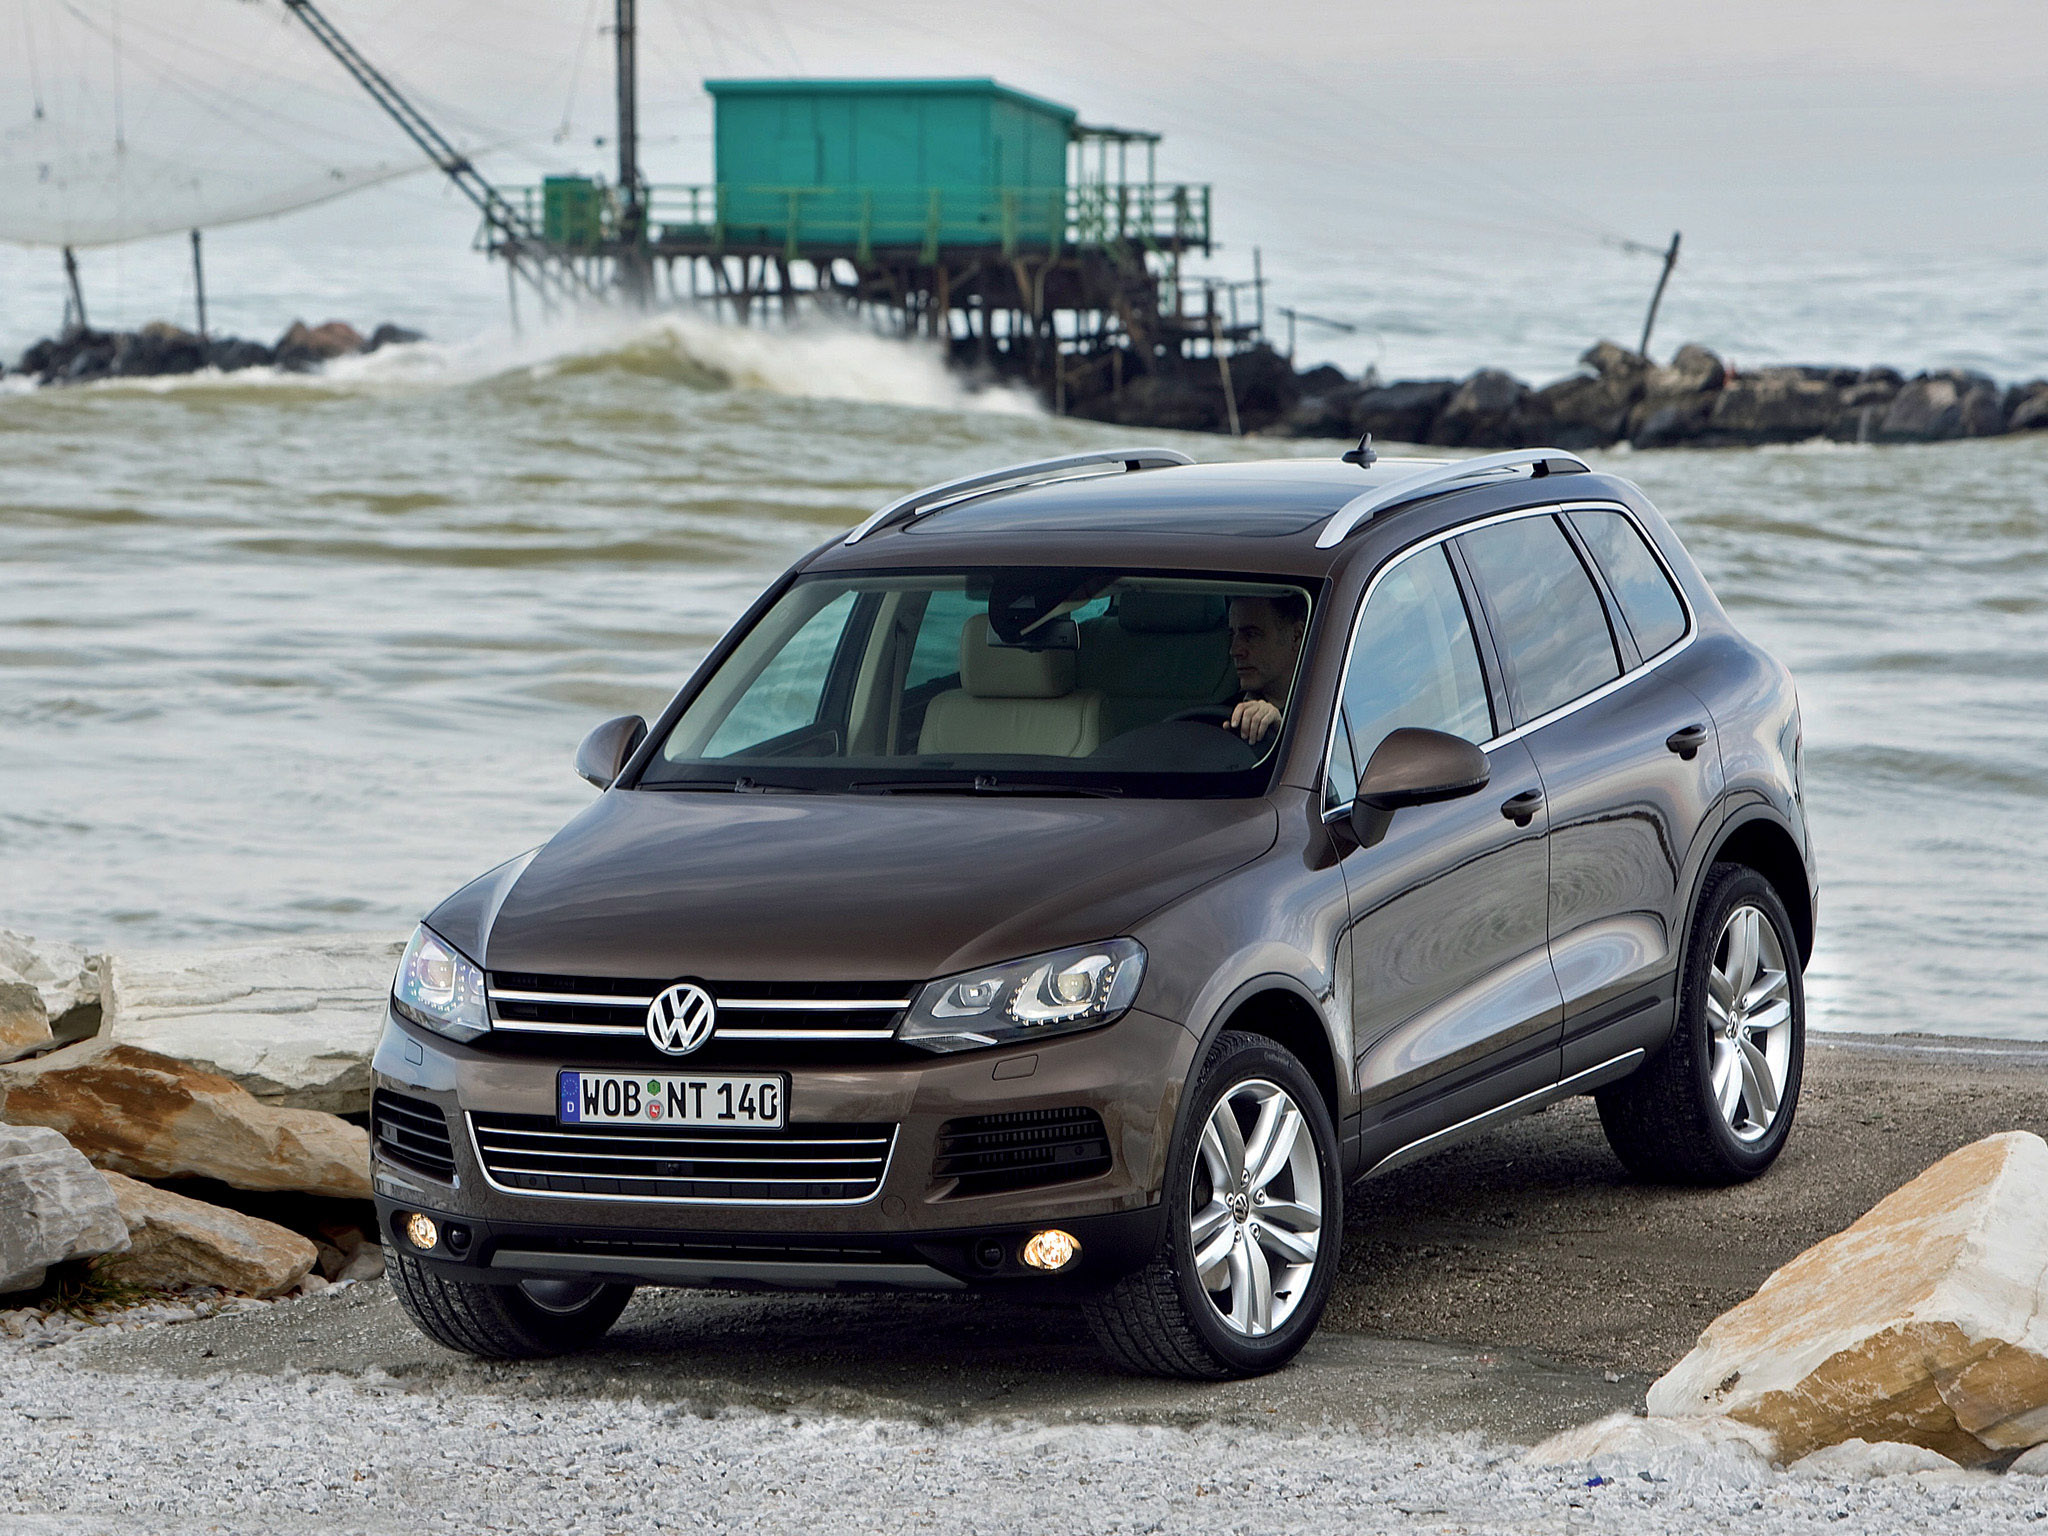 volkswagen touareg v8 tdi 2010 volkswagen touareg v8 tdi 2010 photo 08 car in pictures car. Black Bedroom Furniture Sets. Home Design Ideas